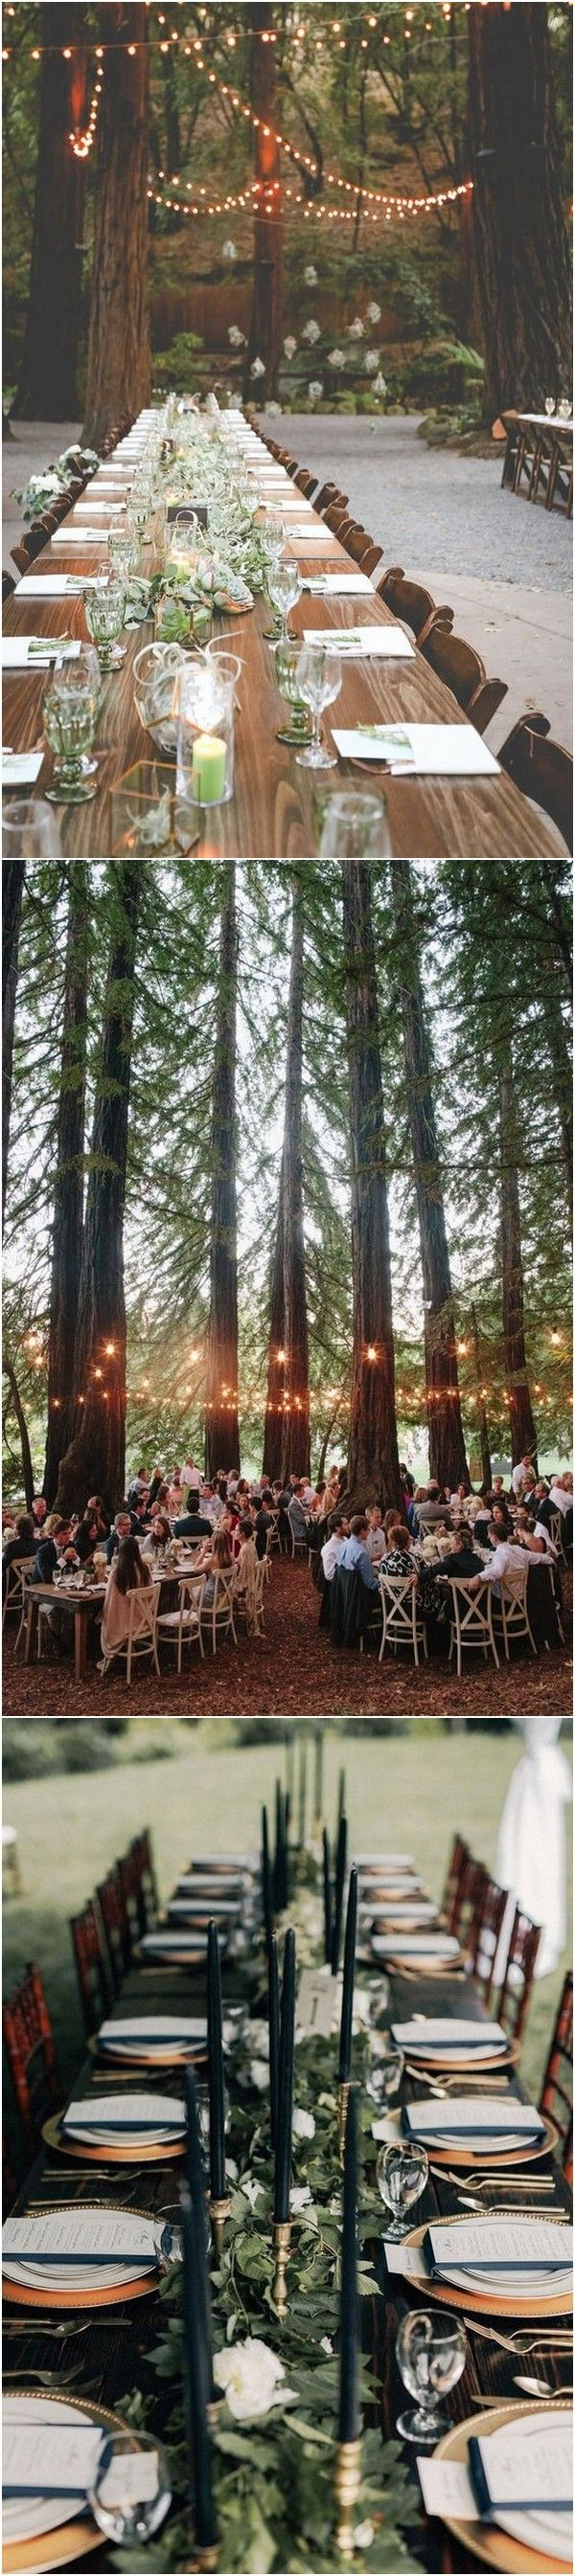 Wedding decorations for reception january 2019  Whimsical Woodsy Forest Wedding Reception Ideas for  Trends